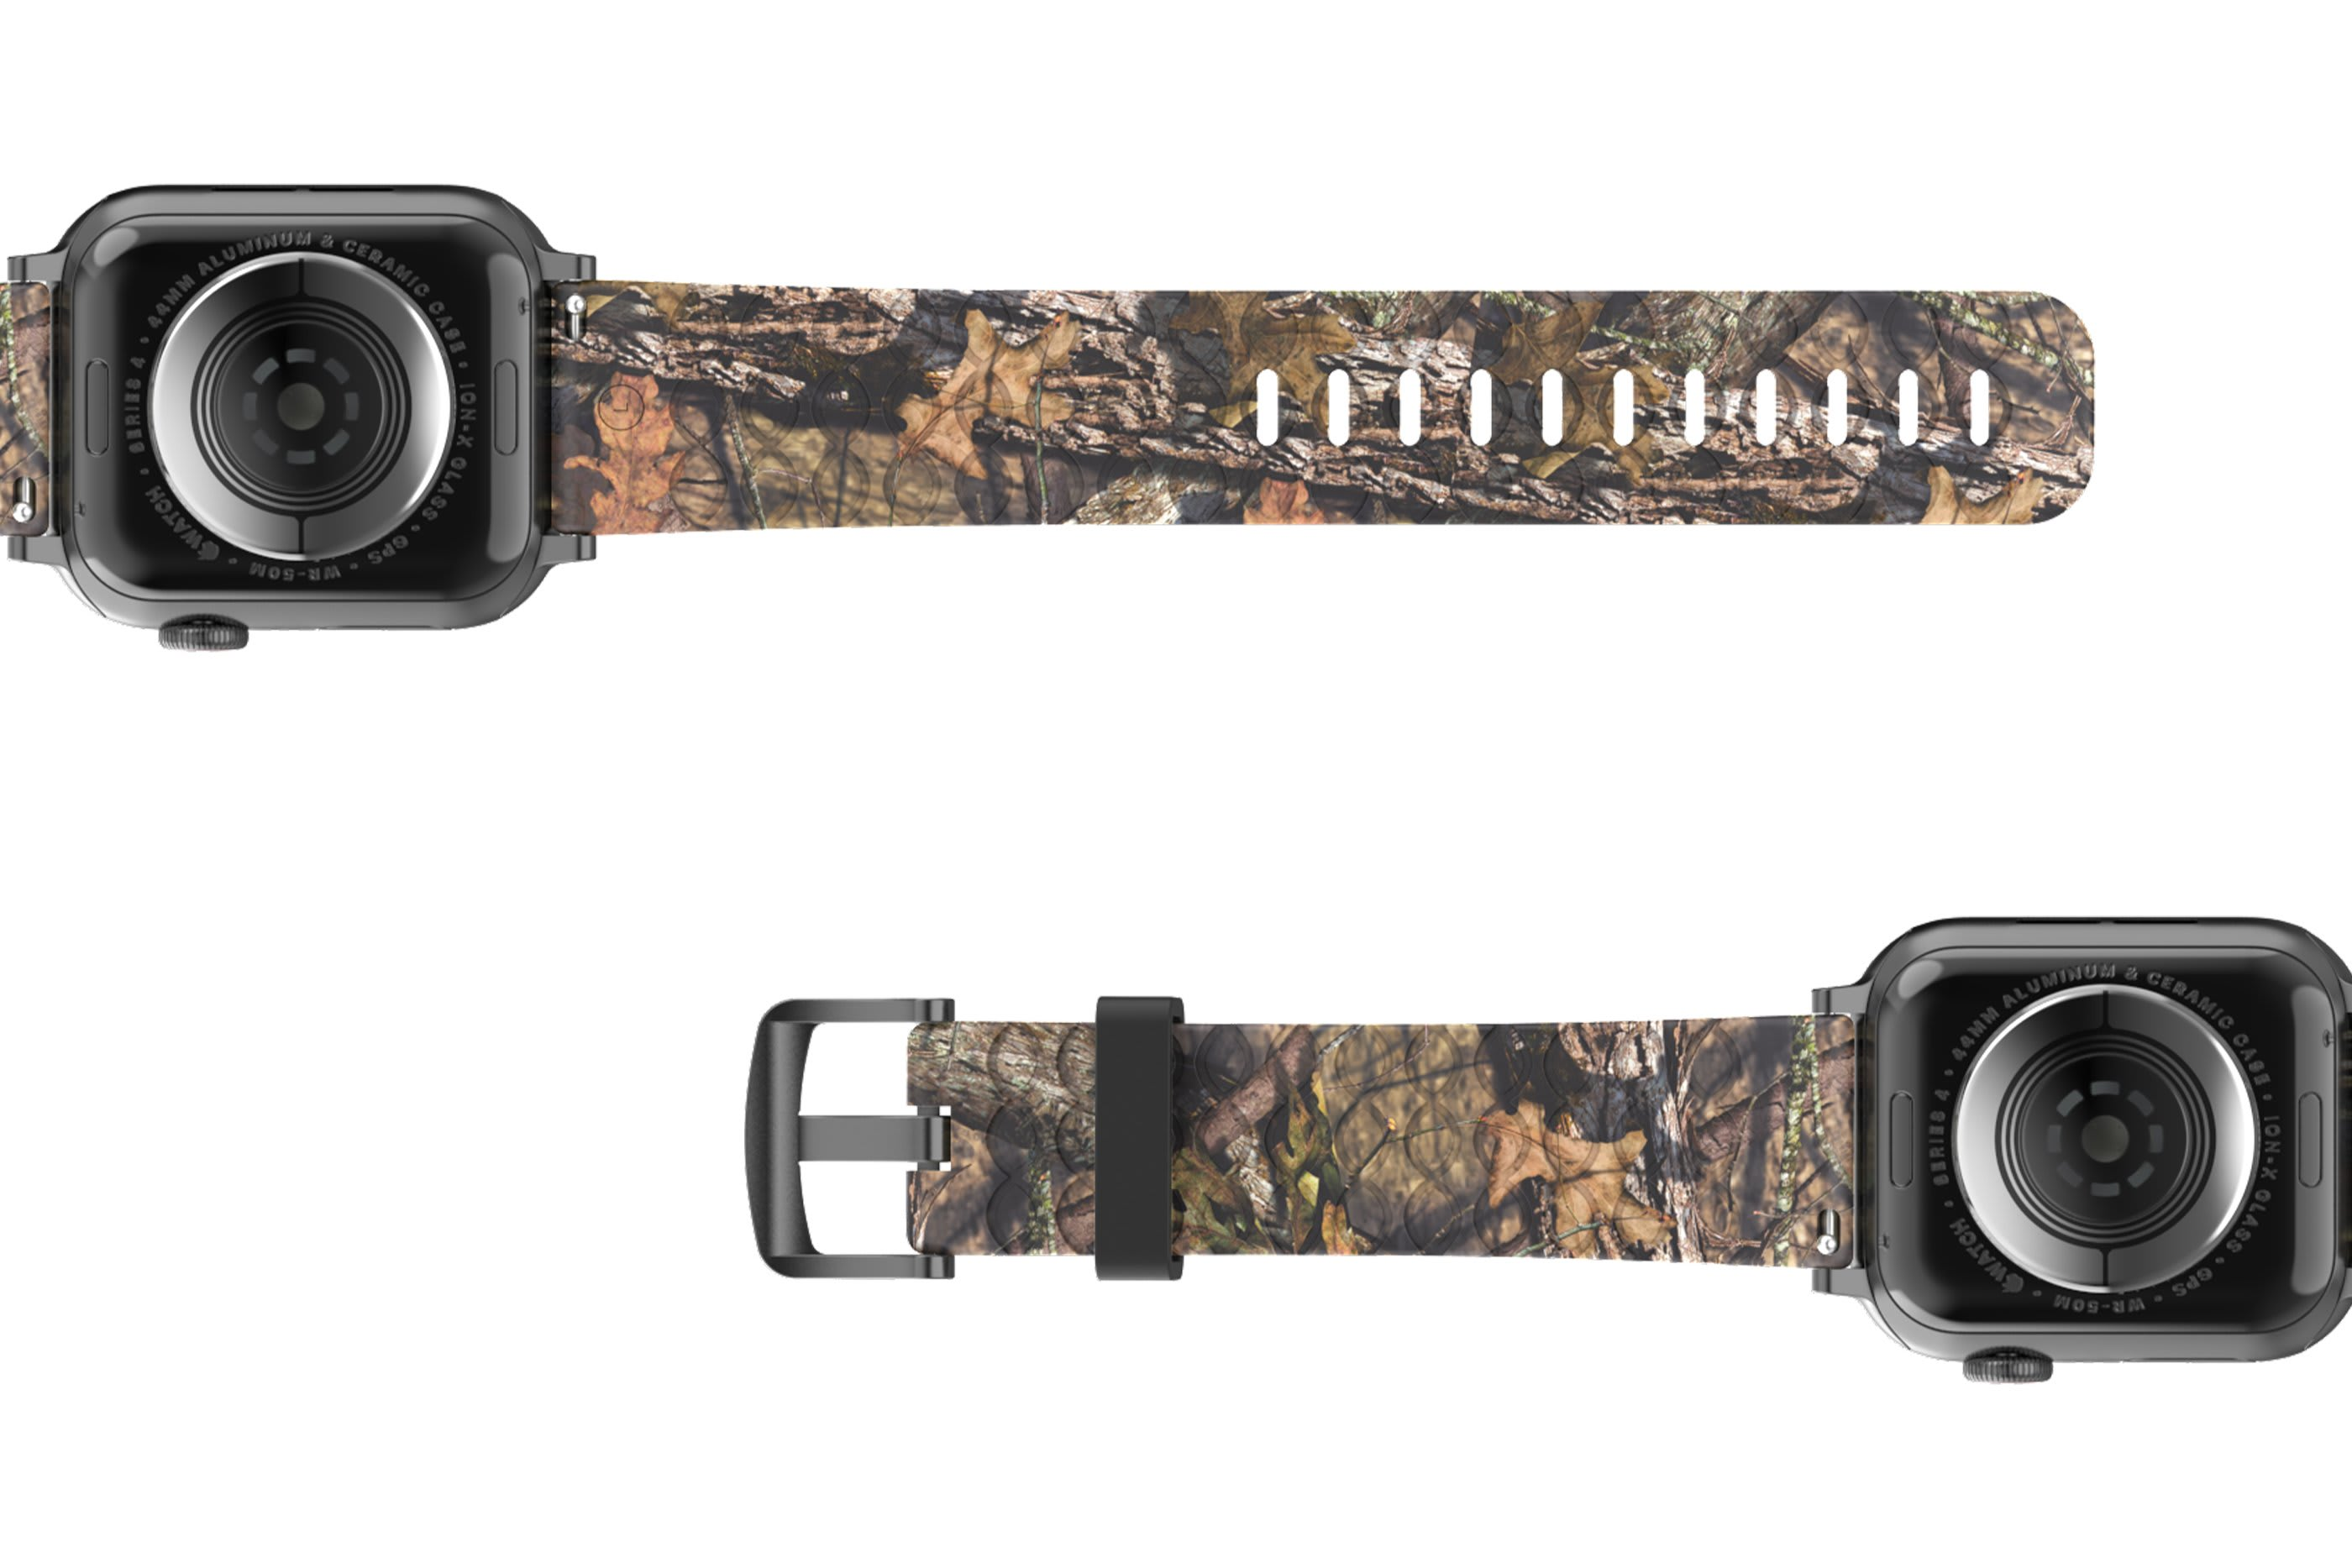 Mossy Oak Breakup Apple Watch Band with gray hardware viewed bottom up